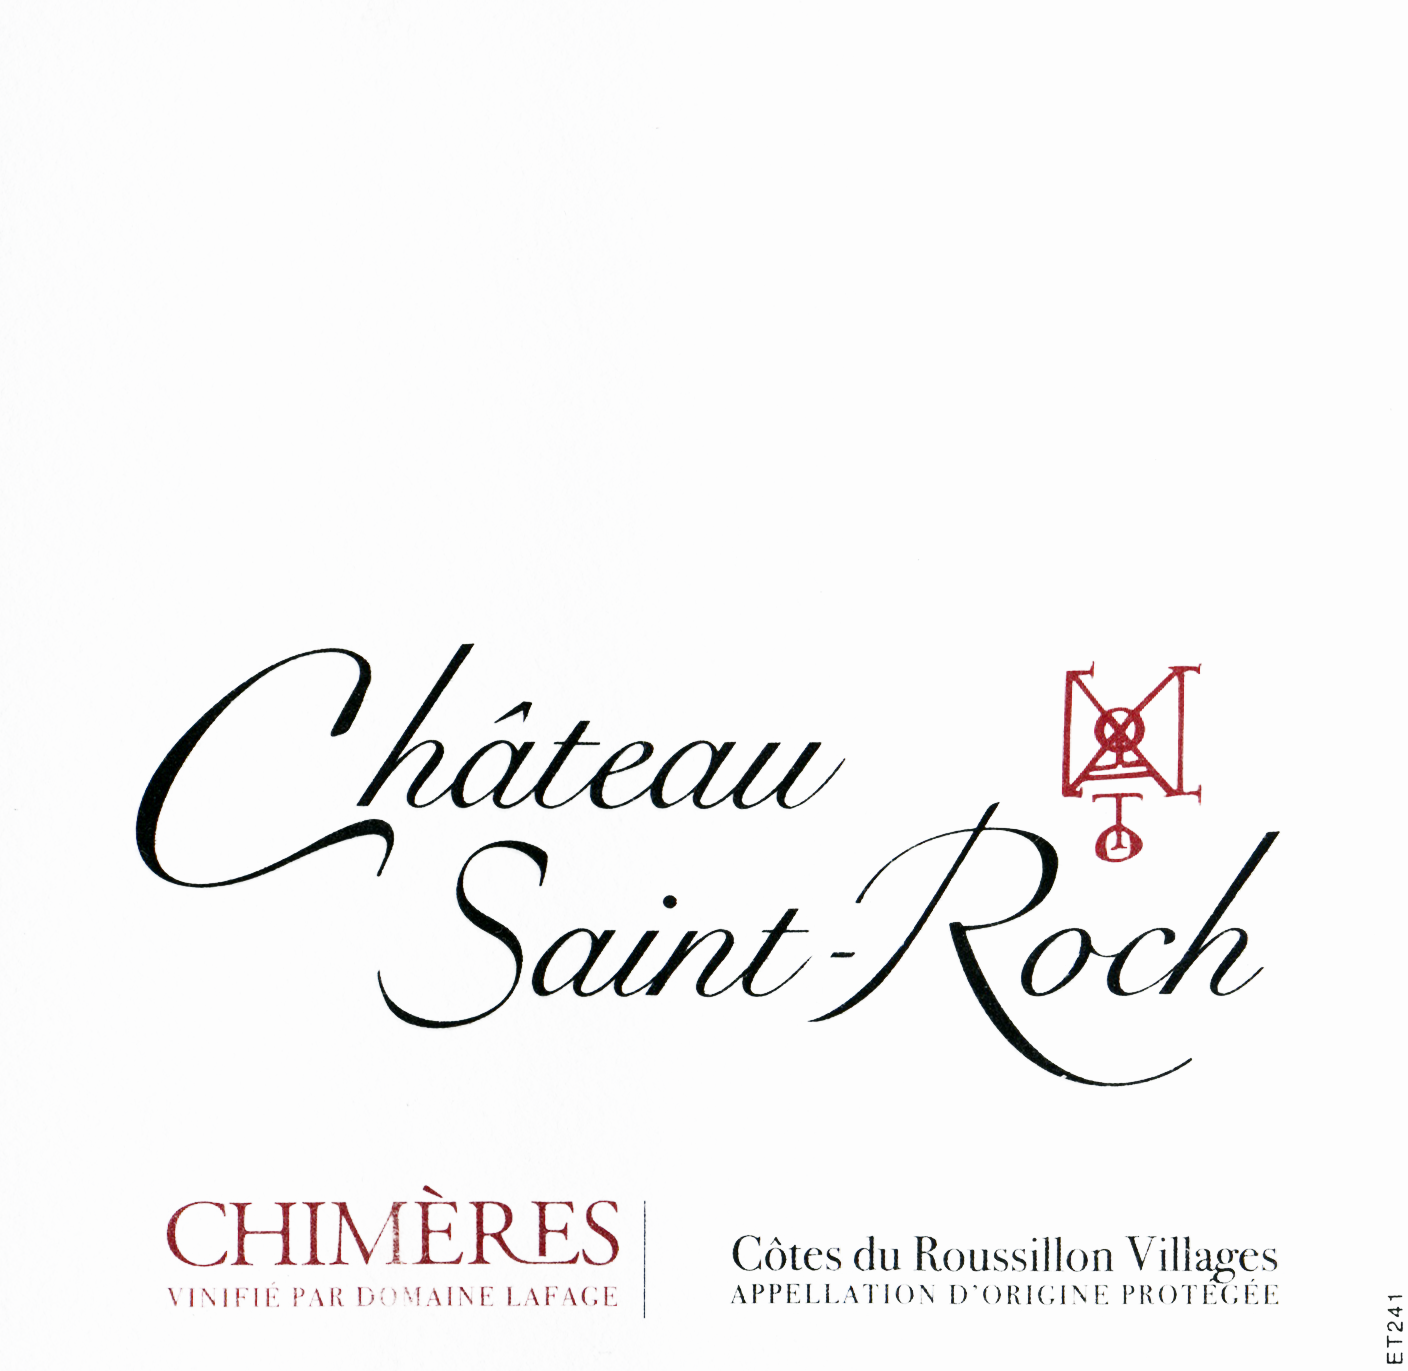 Chateau Saint Roch Chimeres Cotes Du Roussillon Villages 2017